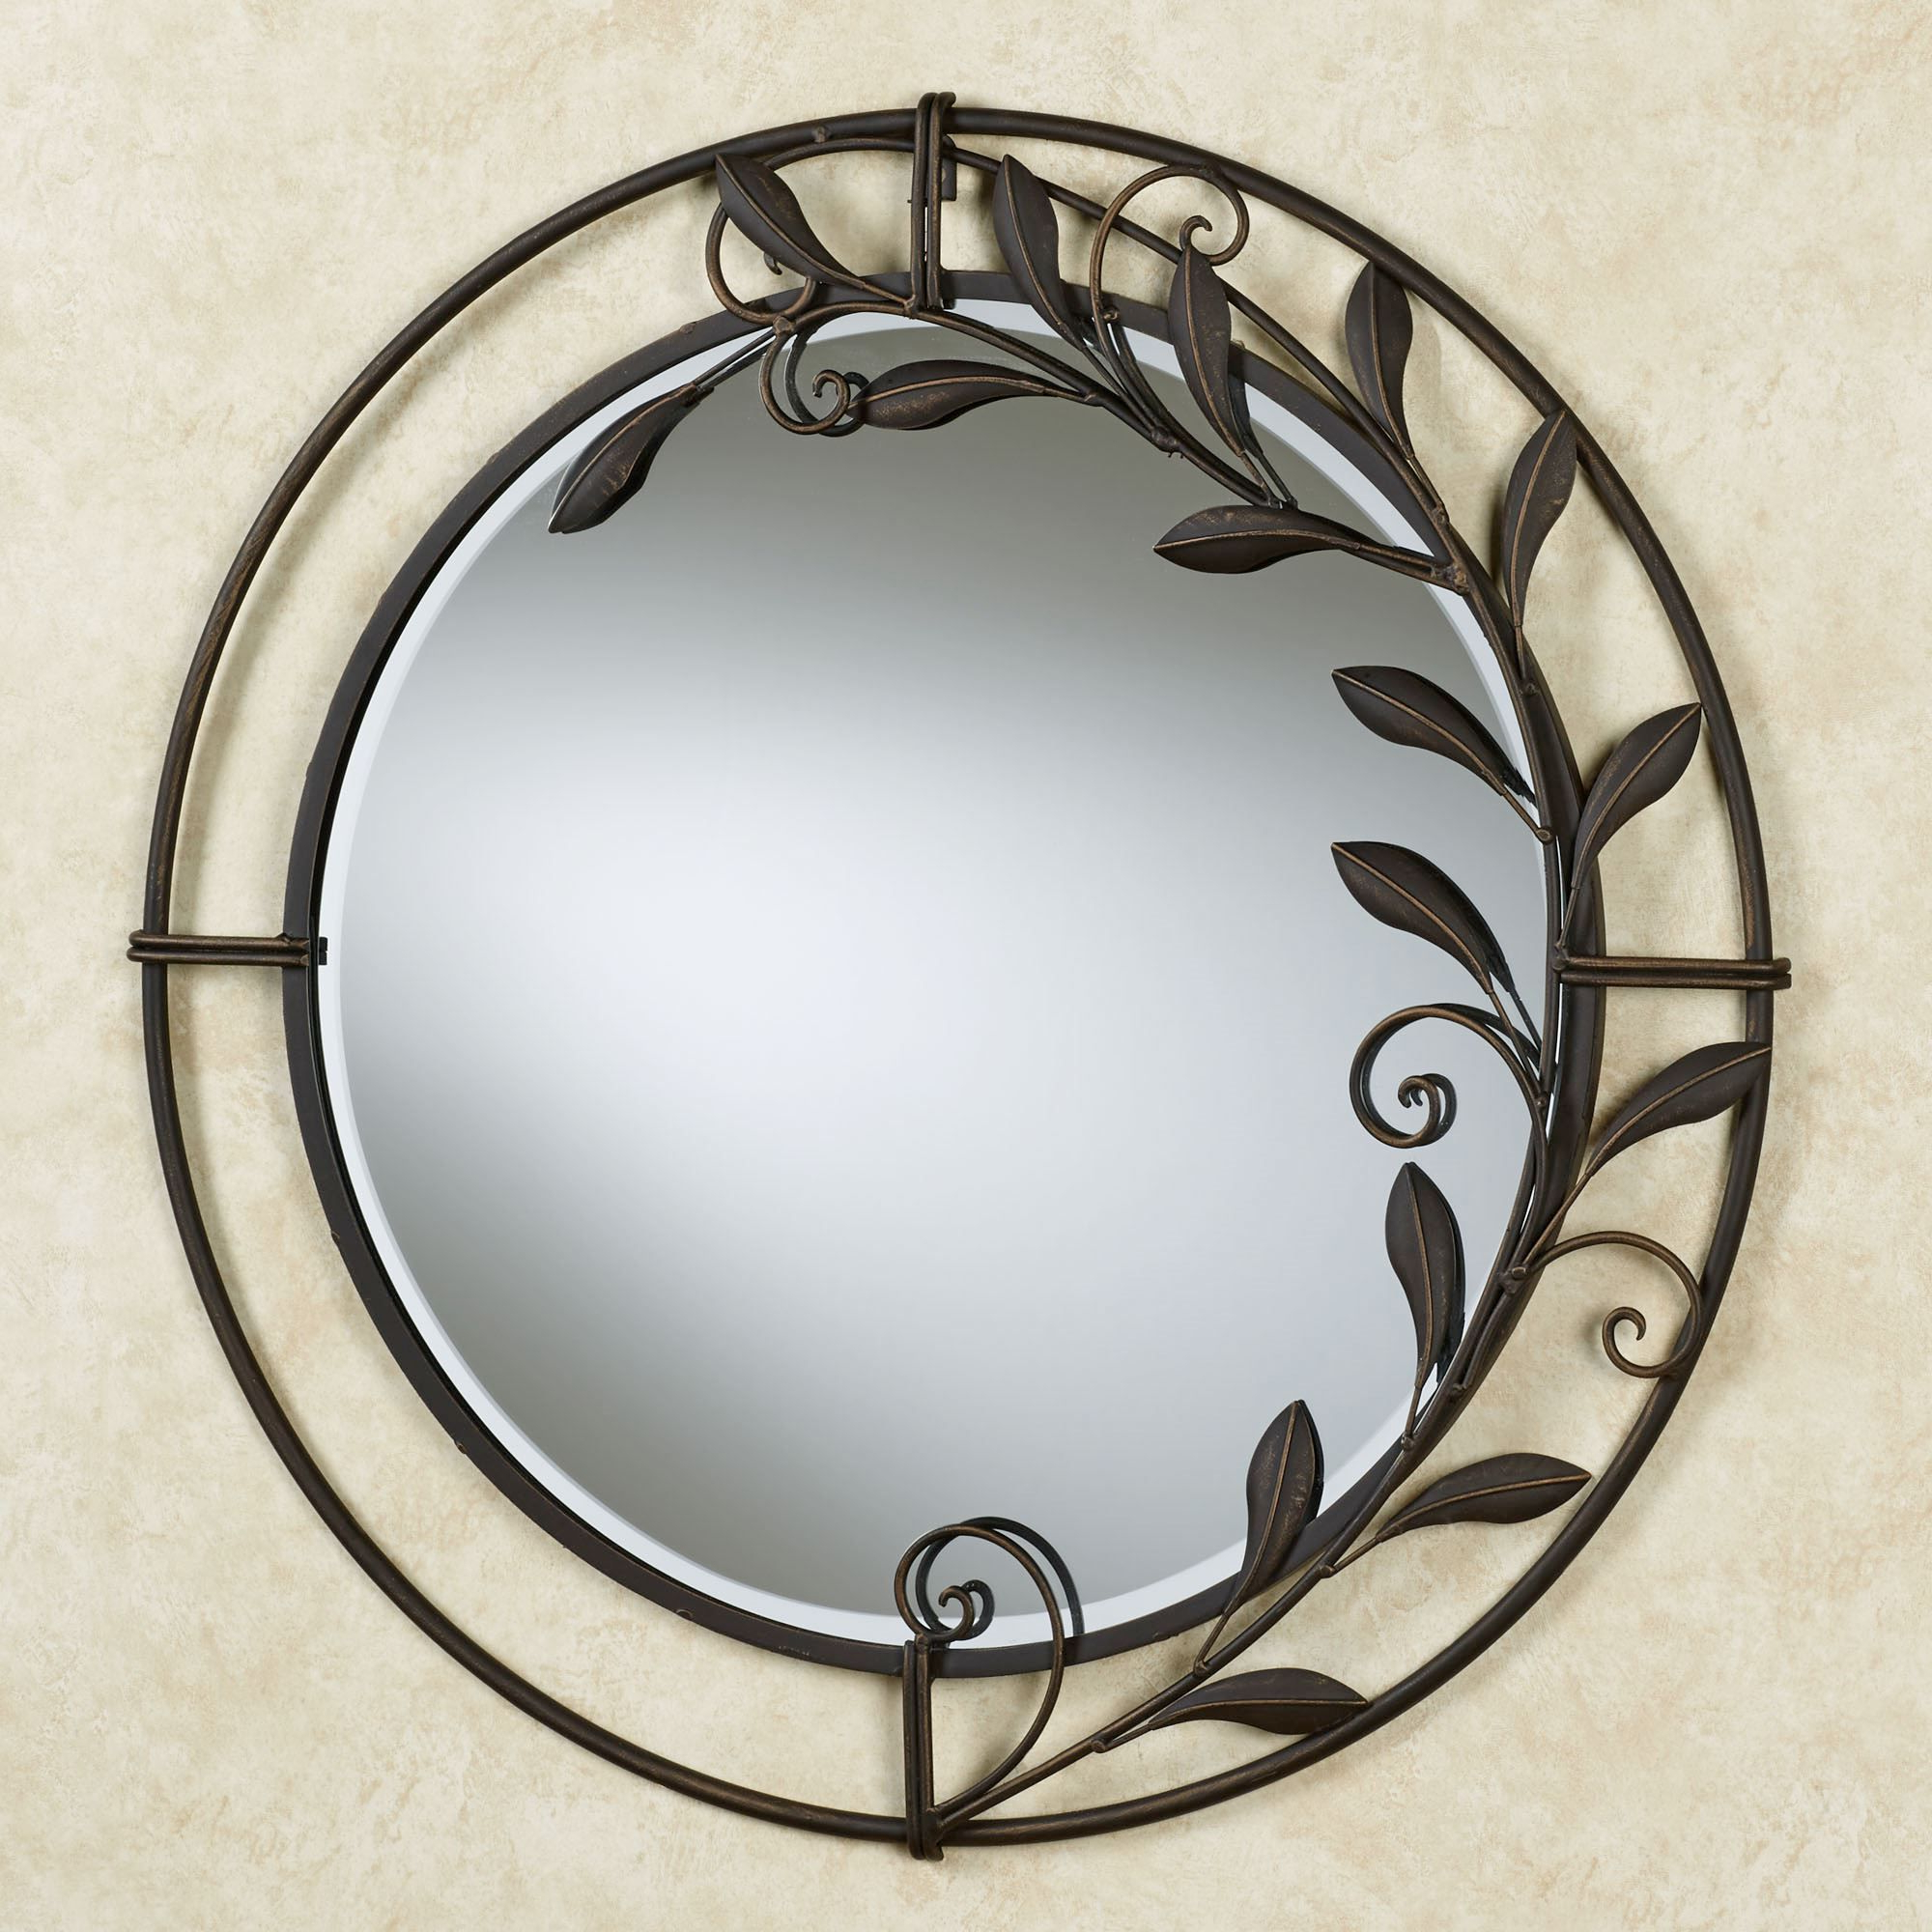 Round Metal Wall Mirrors Pertaining To Trendy Galeazzo Antique Bronze Round Metal Wall Mirror (View 9 of 20)